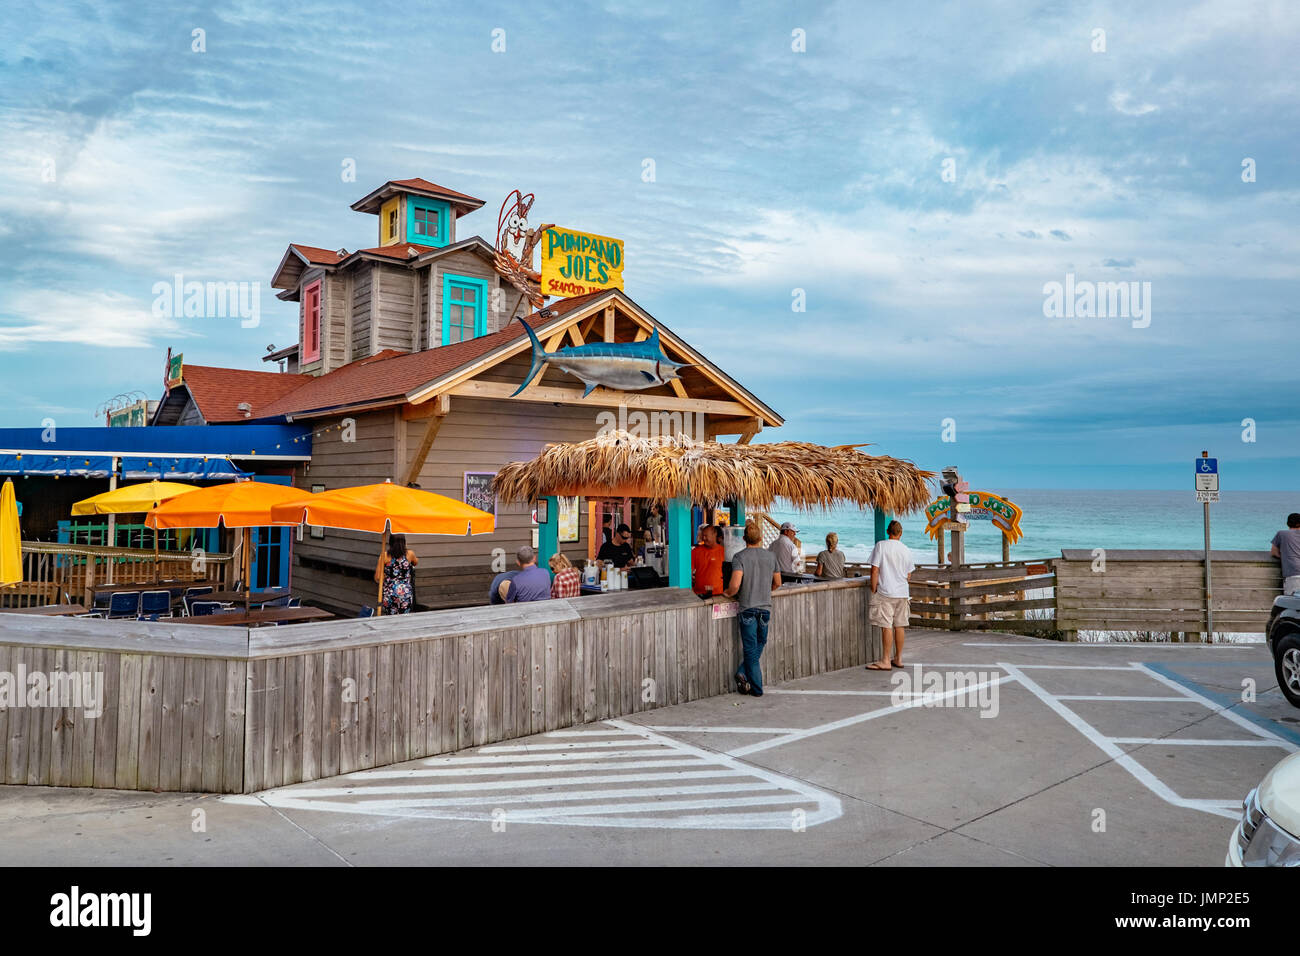 Pompano Joe's restaurant and bar, at Miramar Beach, just east of Destin, Florida, on the Gulf of Mexico, USA. - Stock Image